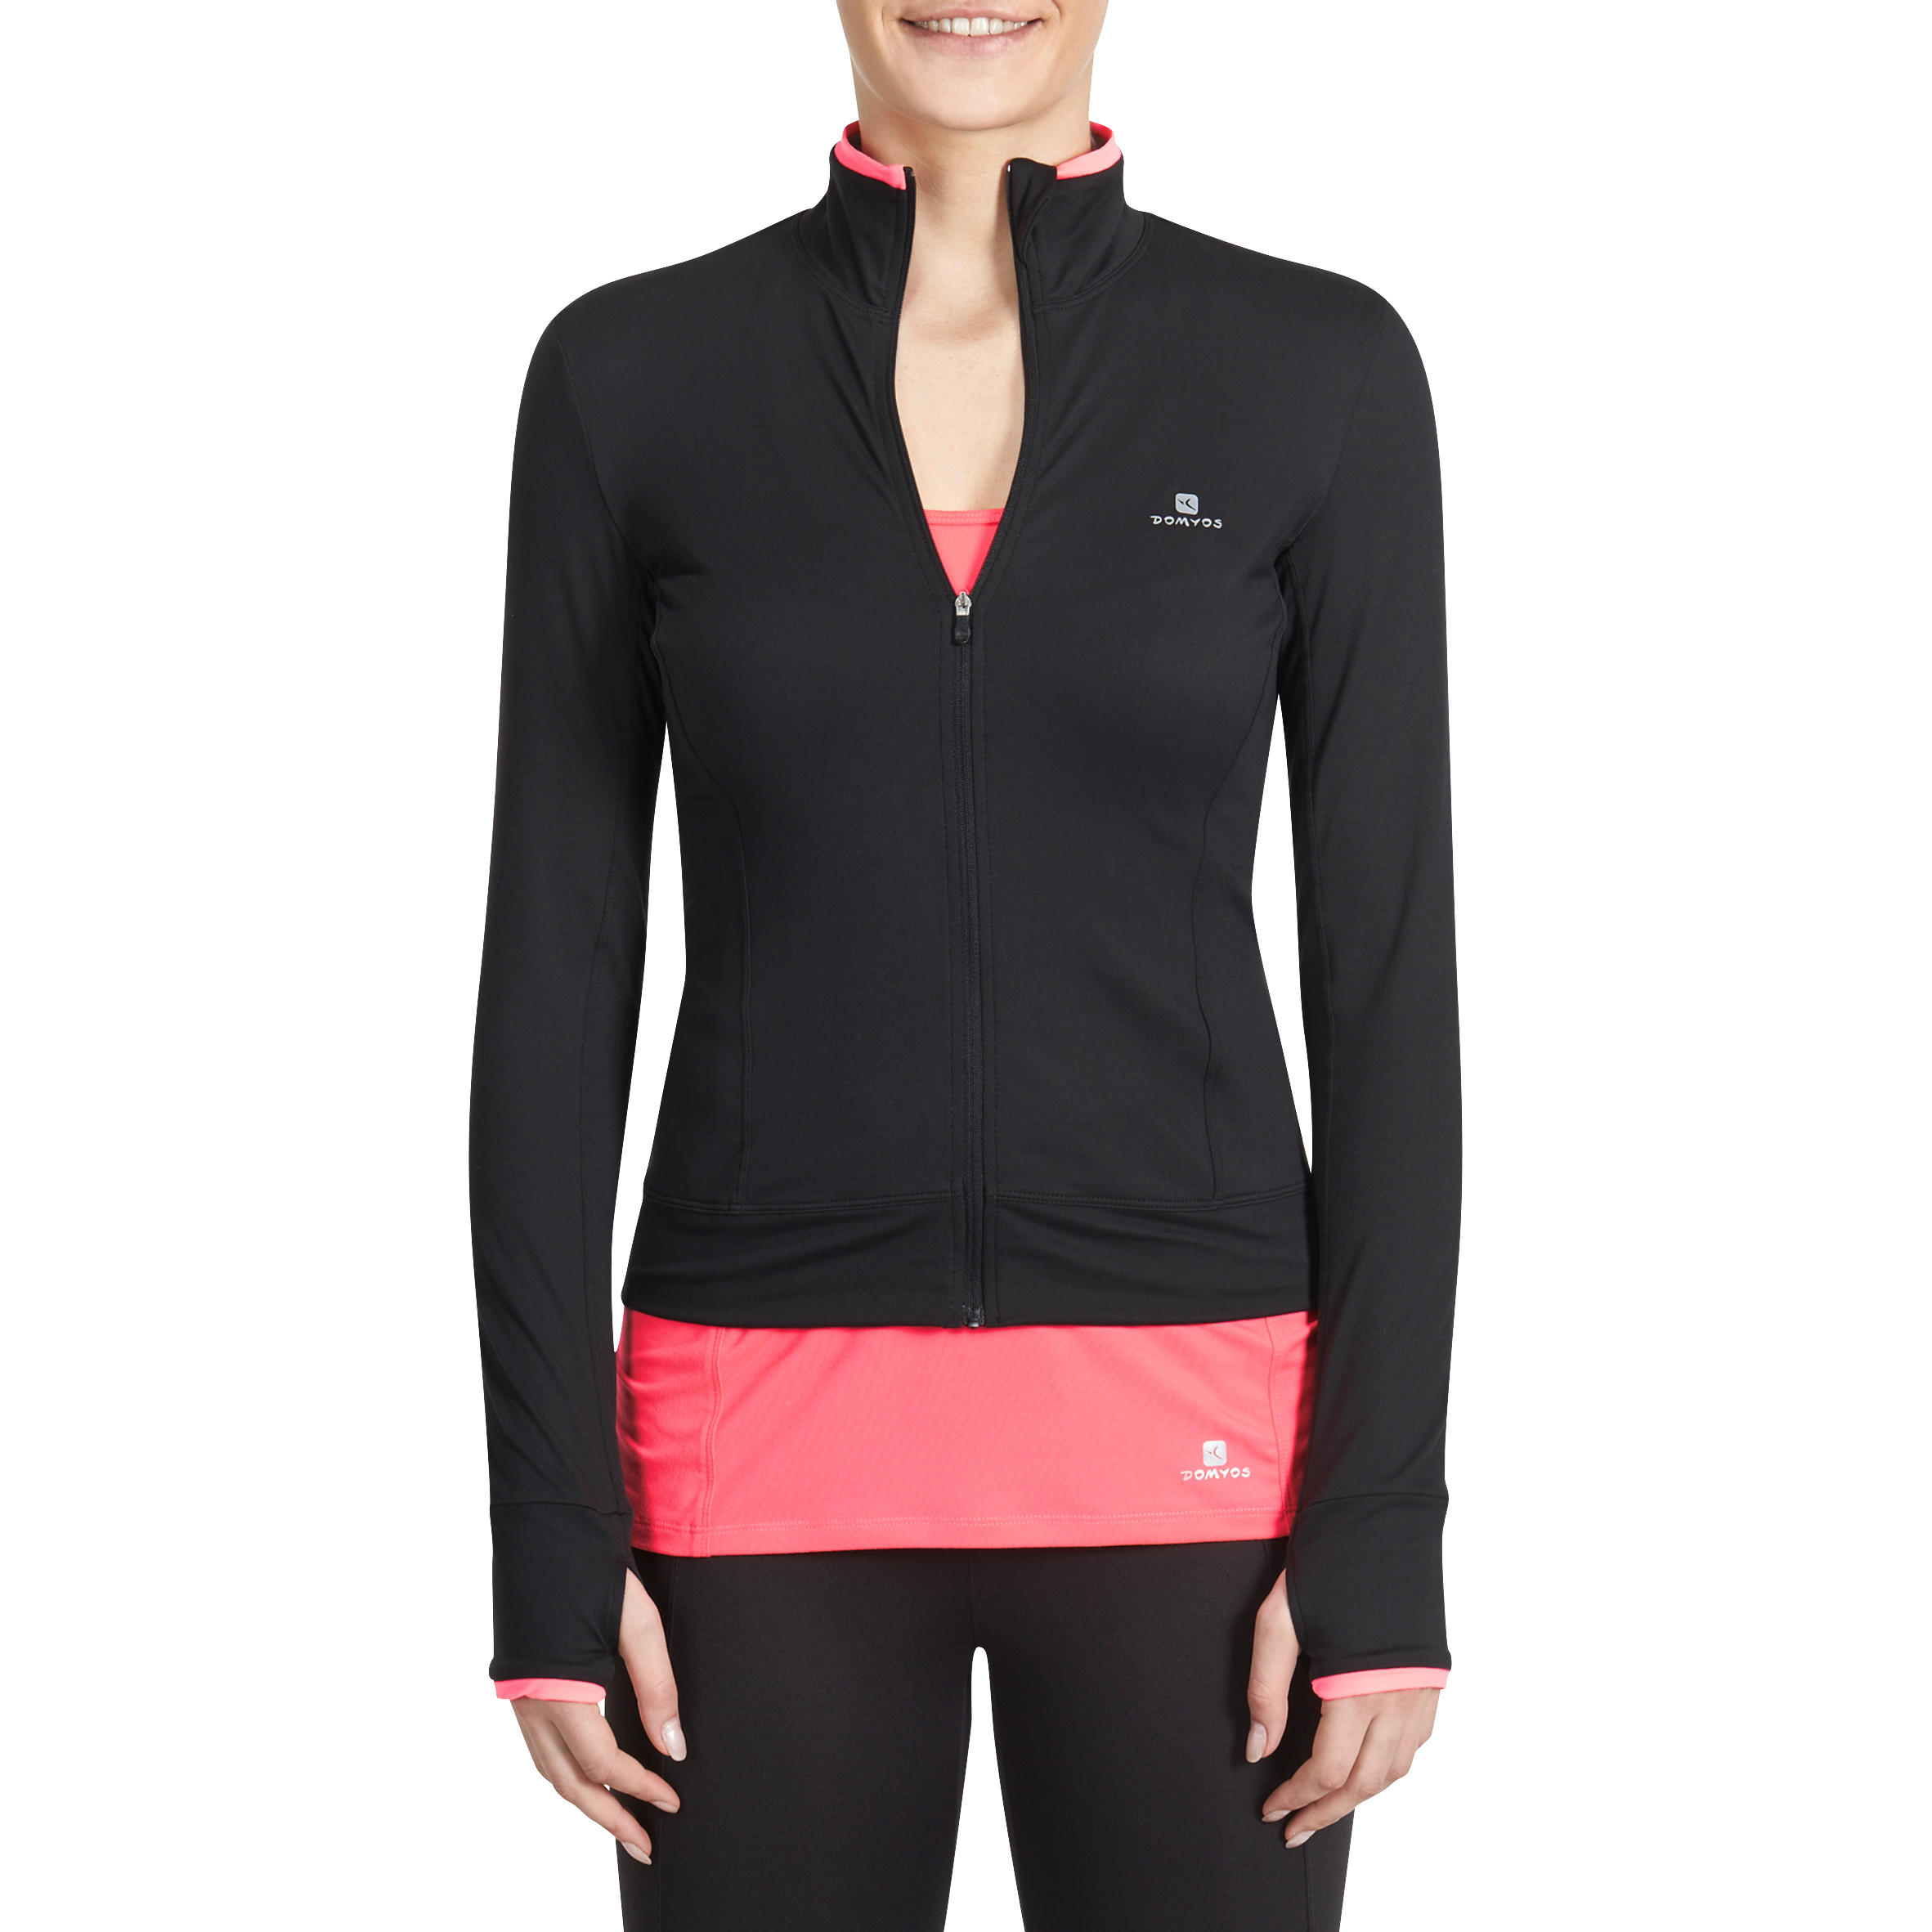 100 Women's Cardio Fitness Jacket - Black